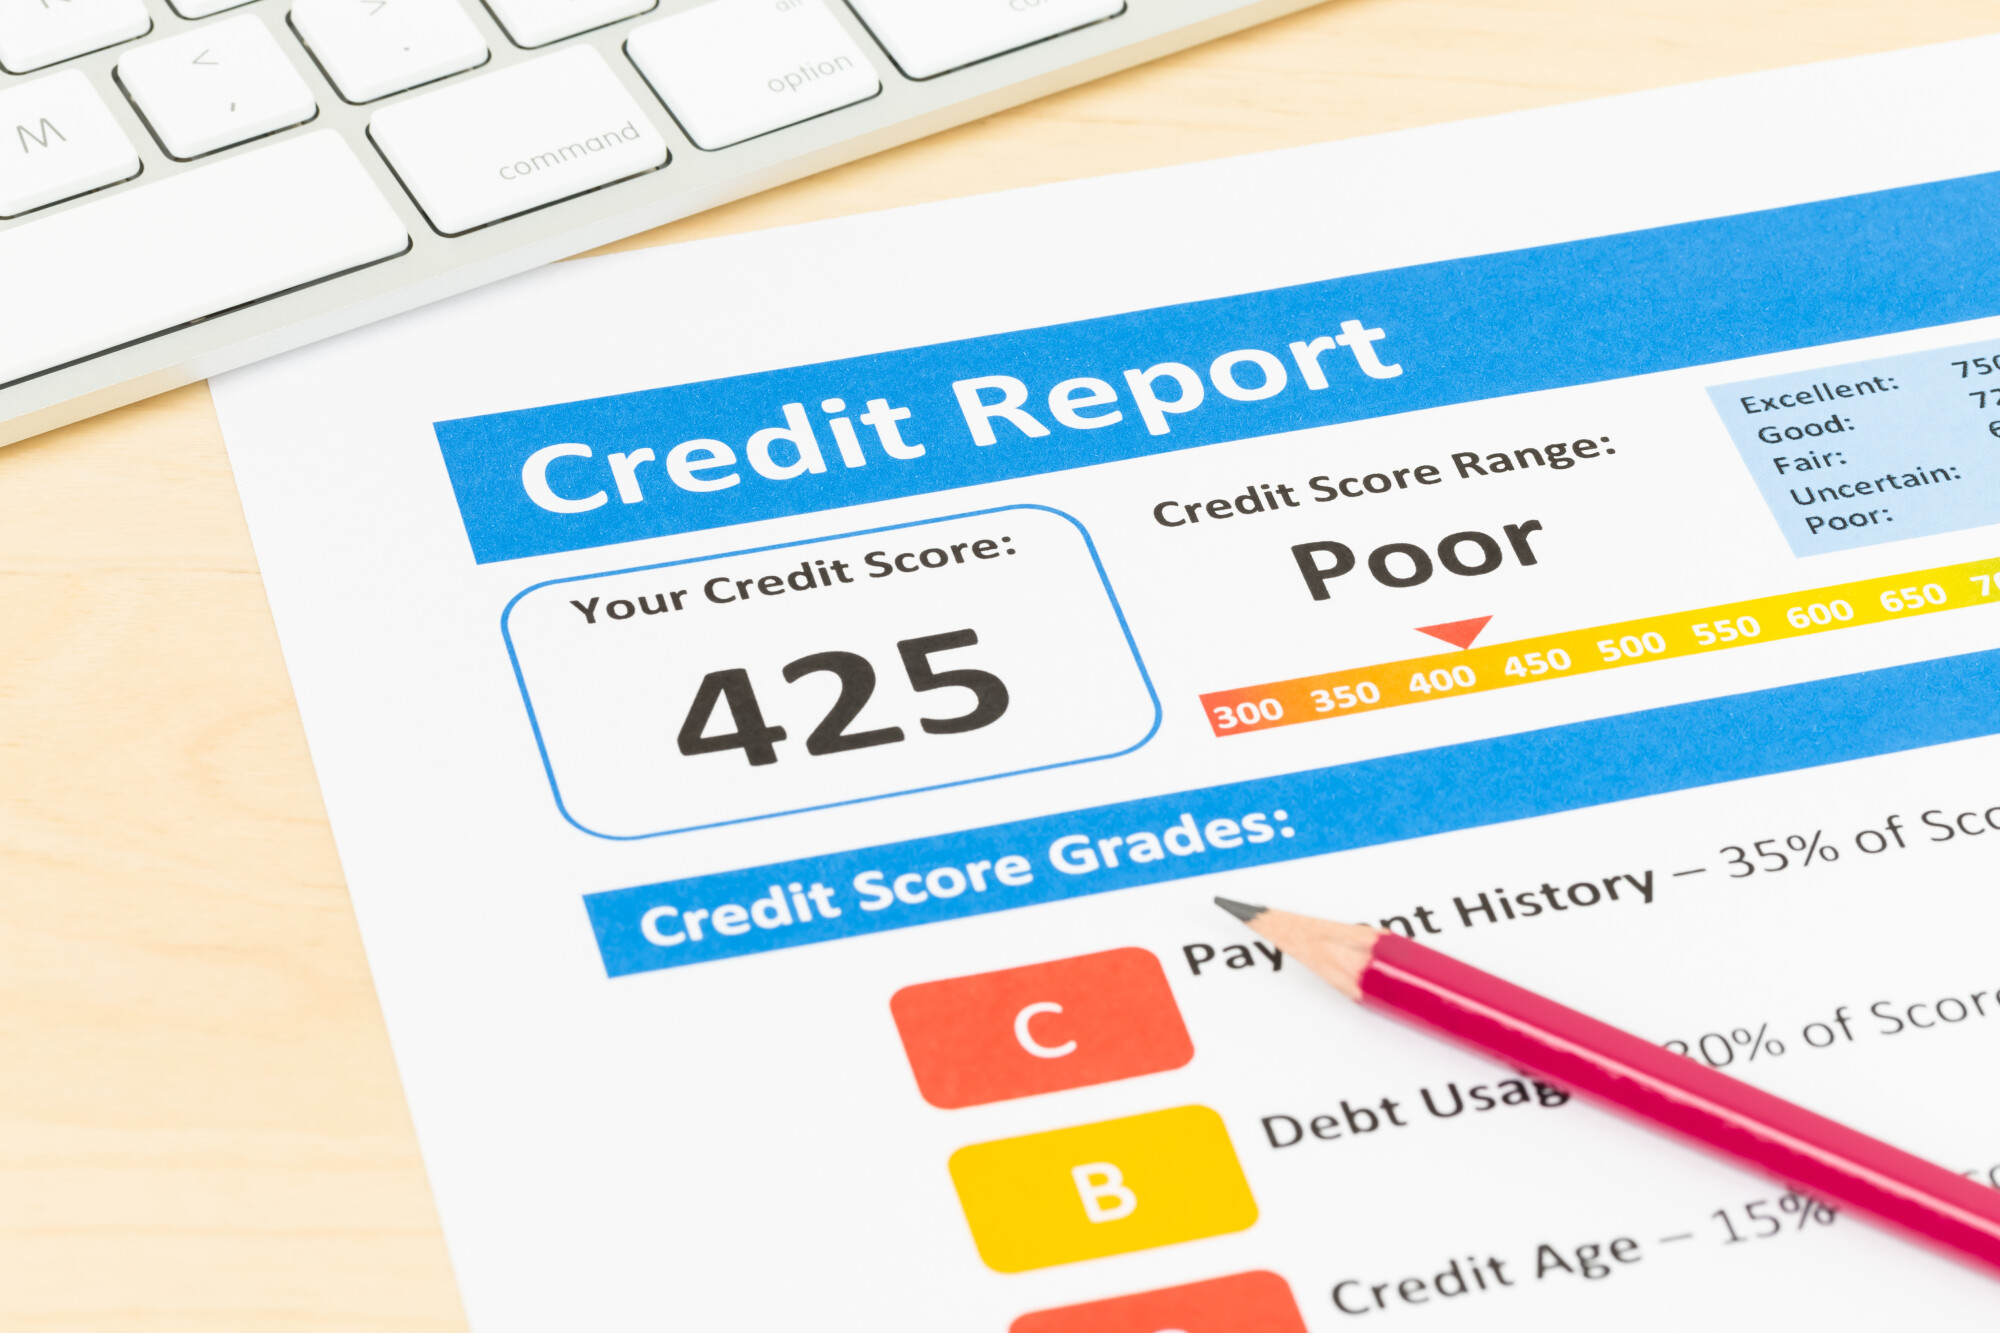 If you're only just learning about what a credit score is, you might not know what a good credit score range is. Learn more about credit scores here.